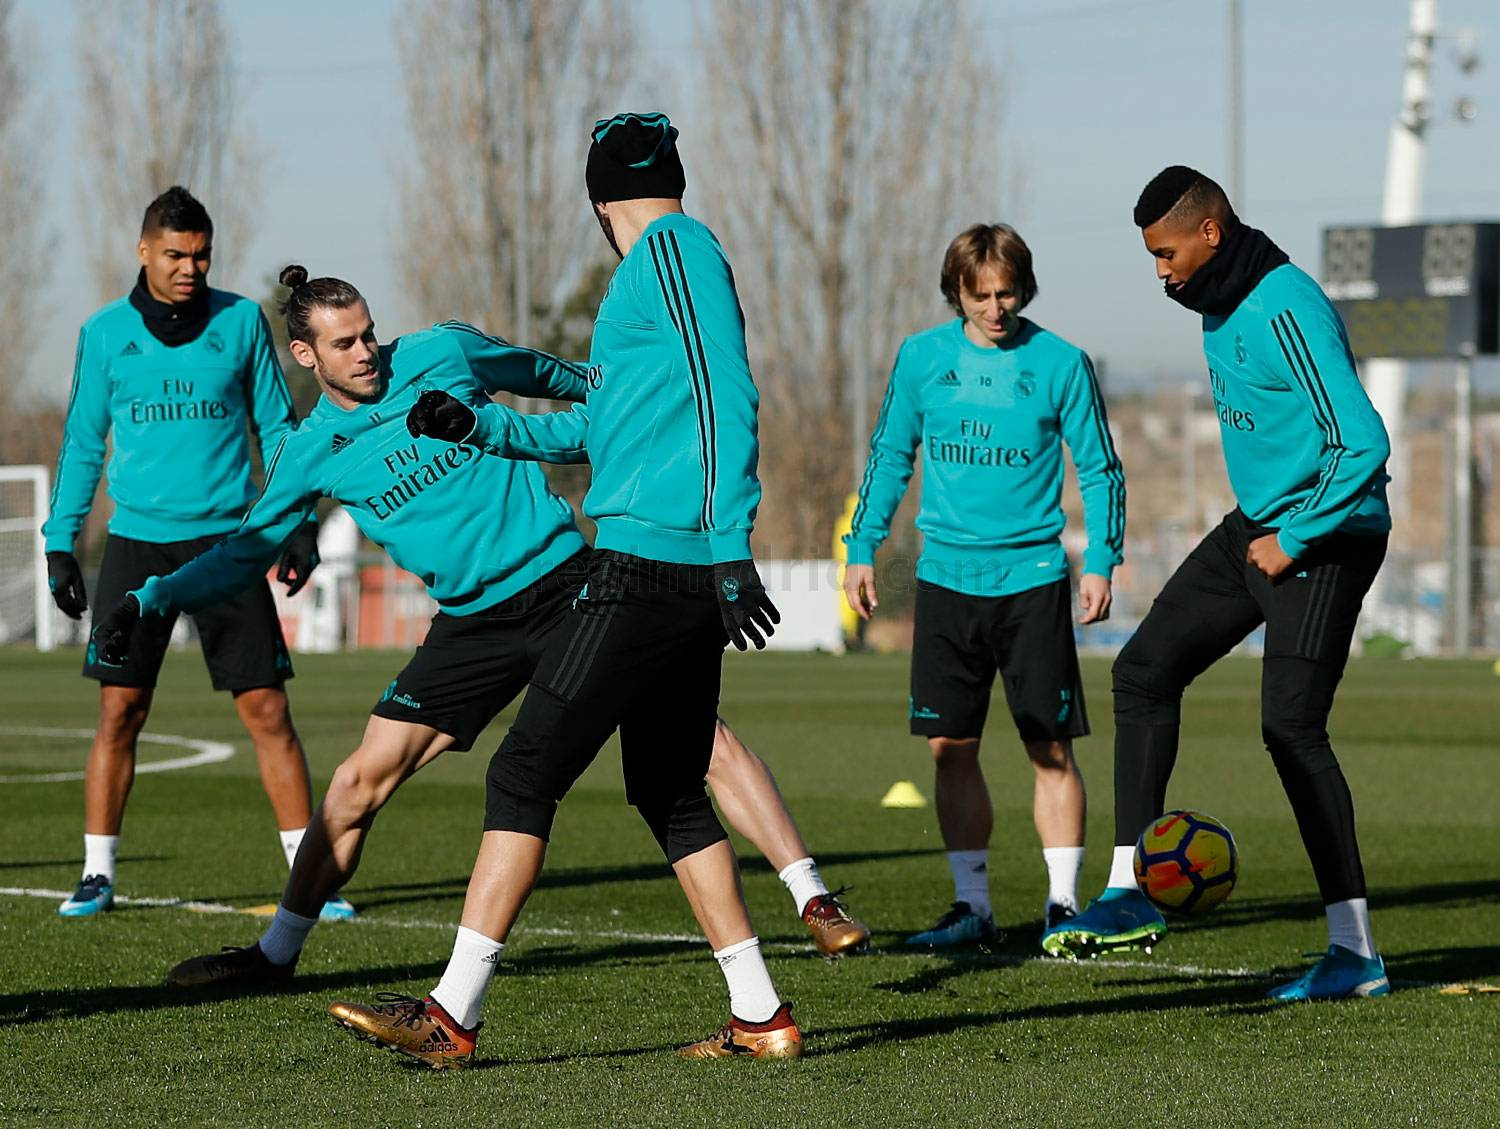 Real Madrid - Entrenamiento del Real Madrid - 22-12-2017